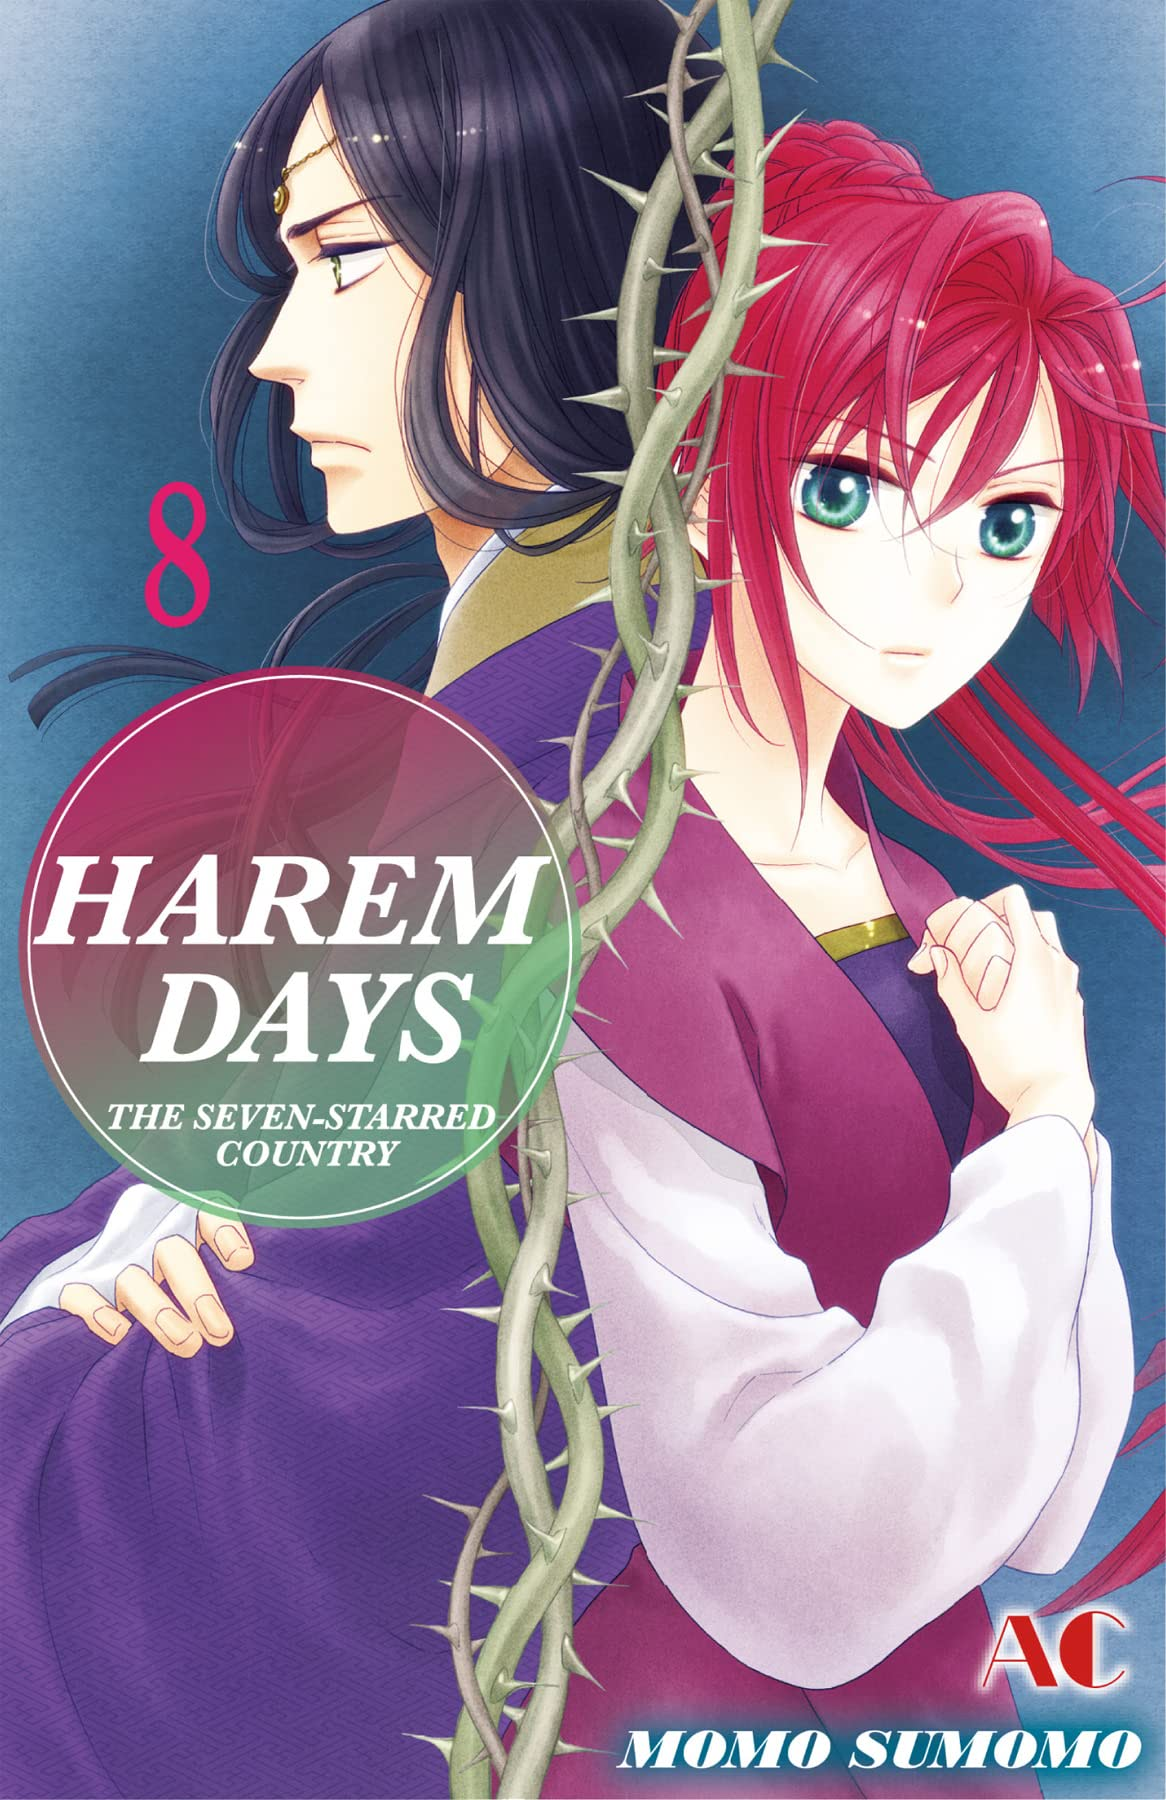 HAREM DAYS THE SEVEN-STARRED COUNTRY Vol. 8